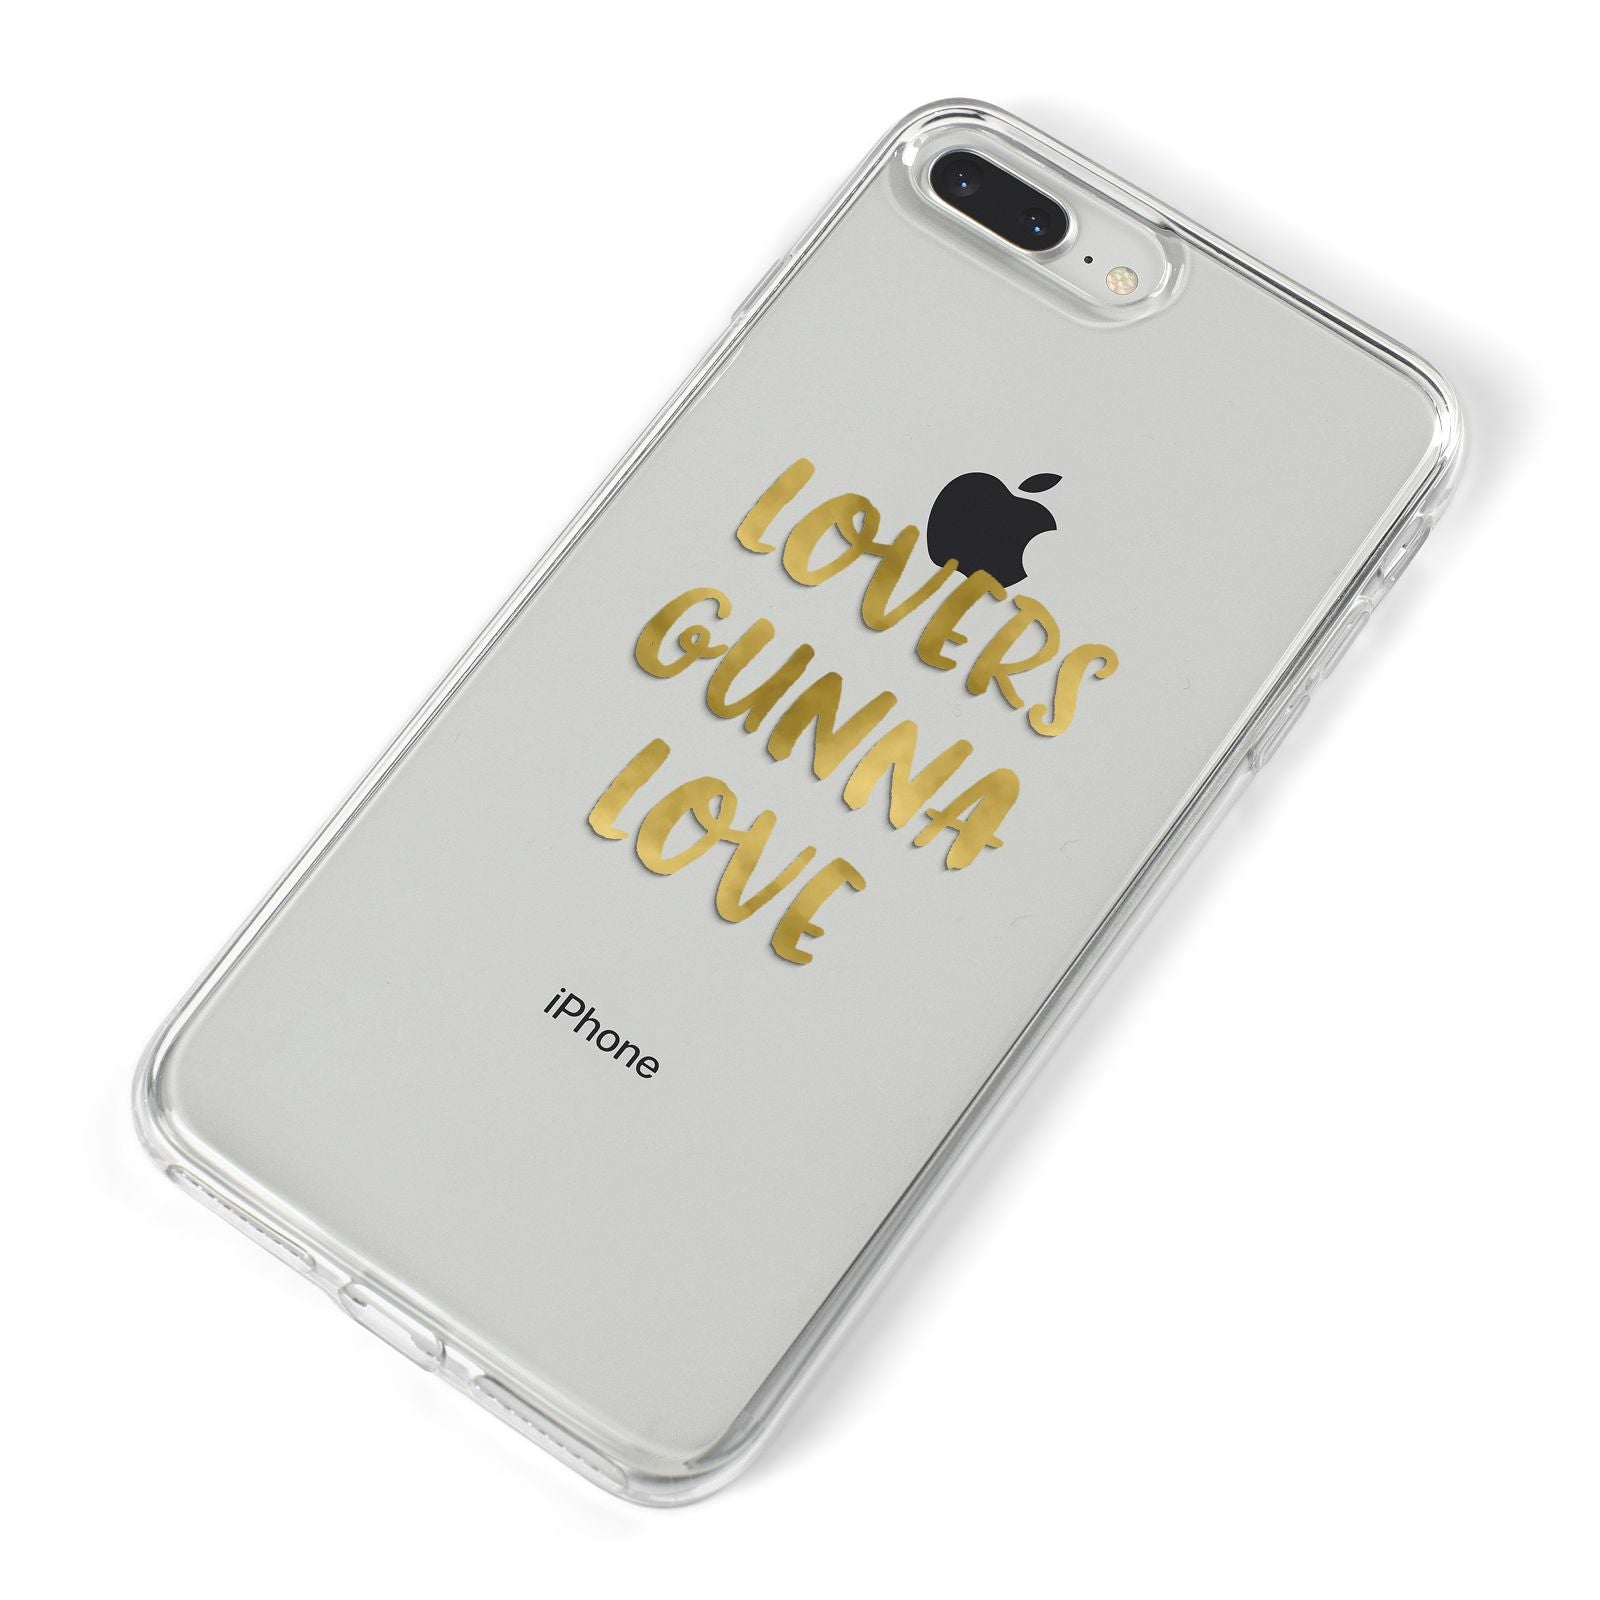 Lovers Gunna Love Real Gold Foil iPhone 8 Plus Bumper Case on Silver iPhone Alternative Image